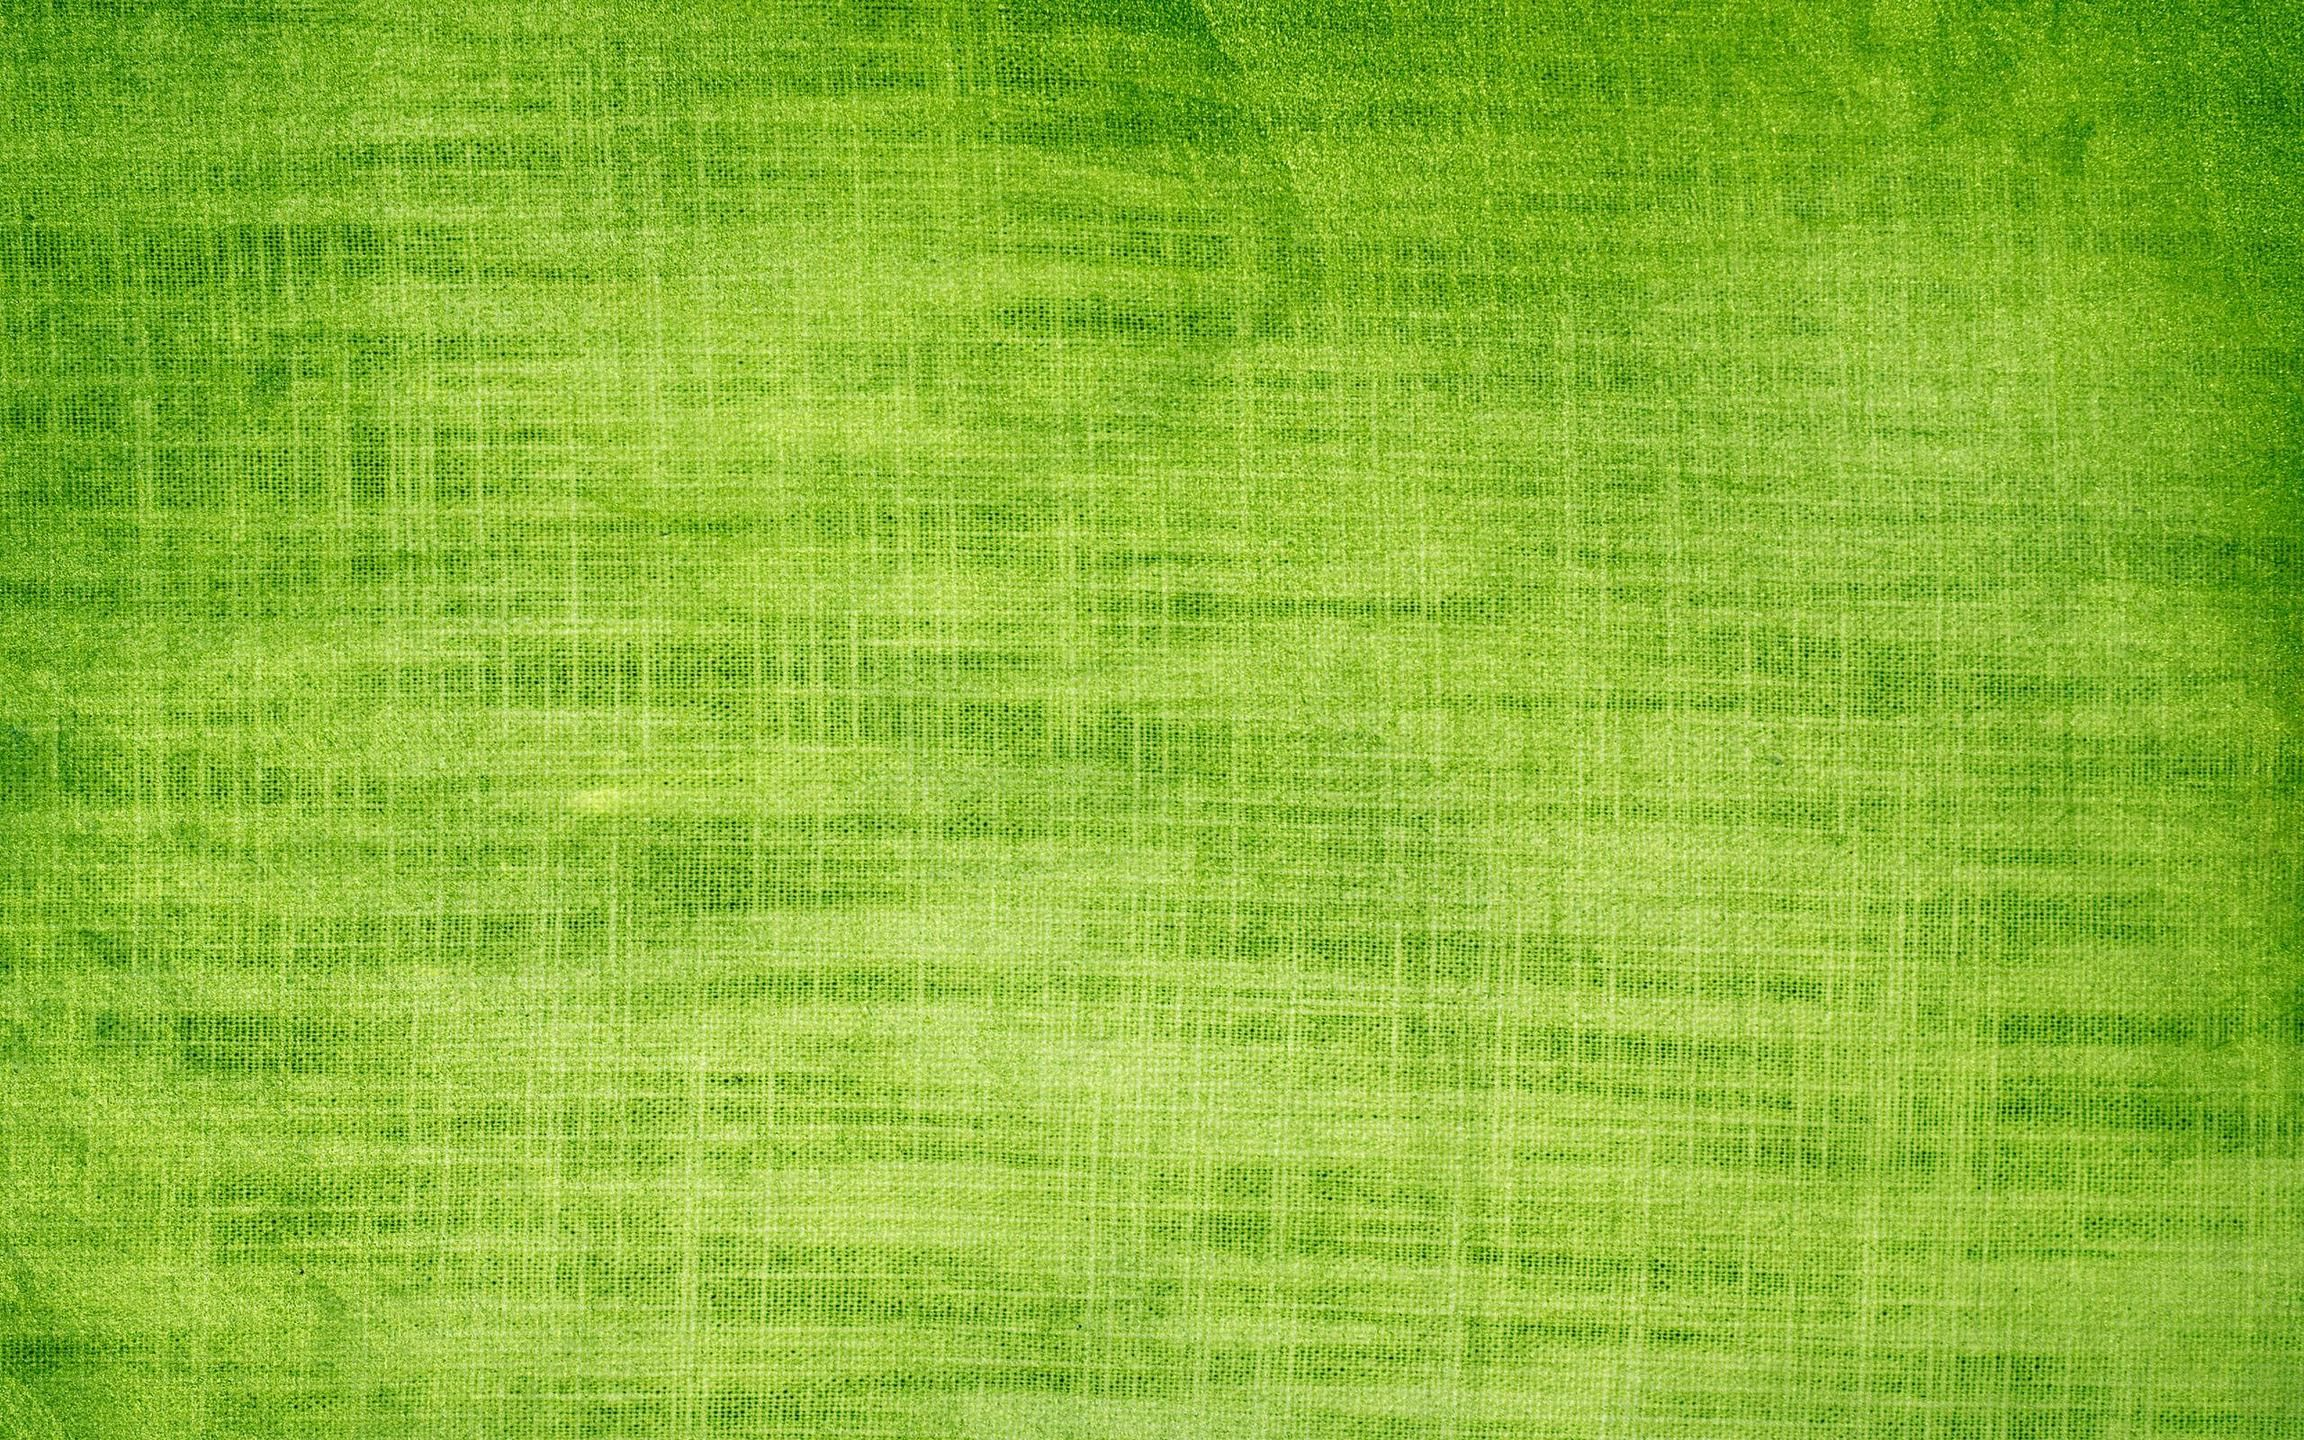 3888x2592px Light Green Texture Wall 420119 Green